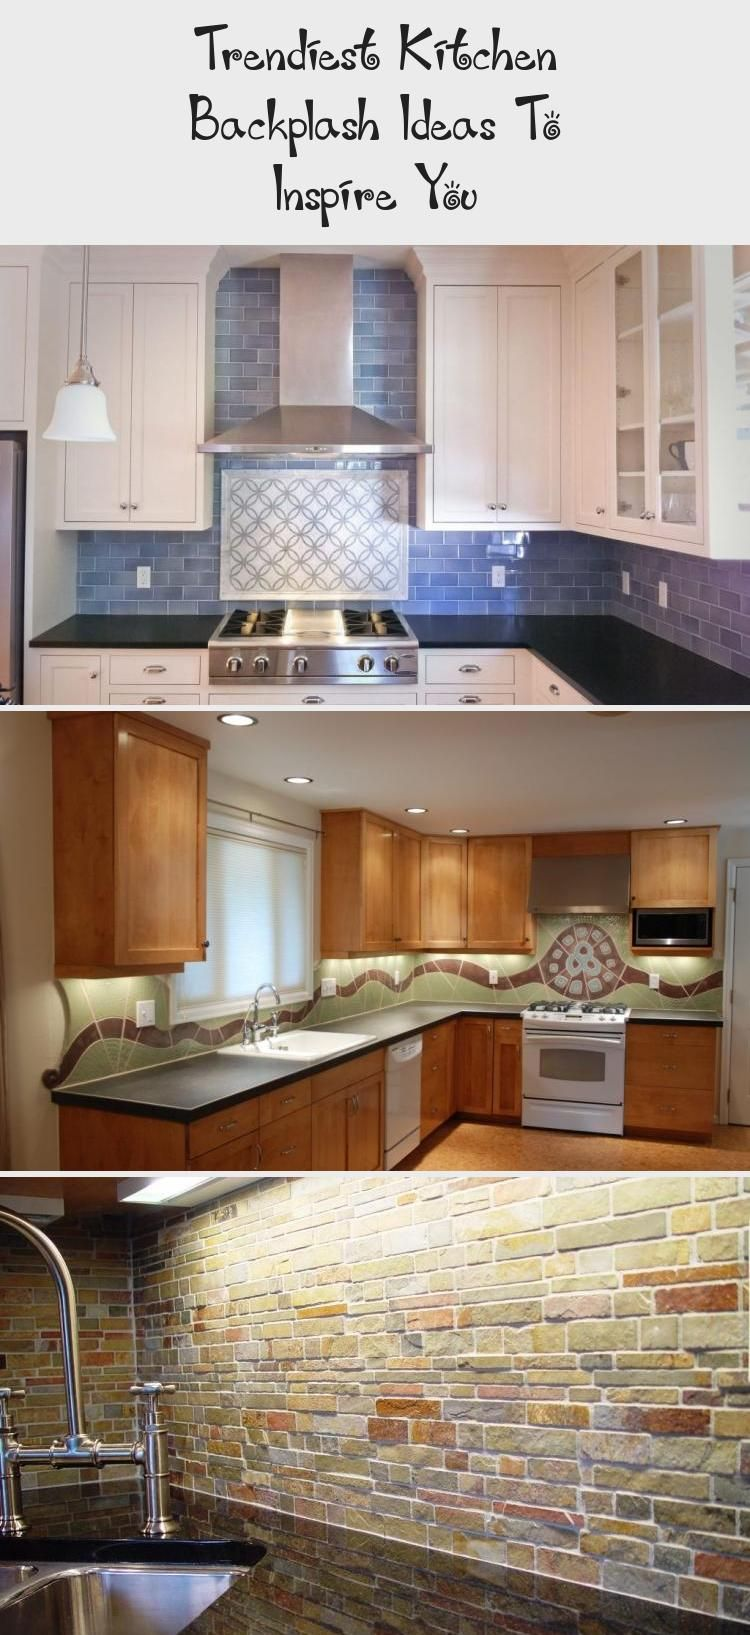 Looking For Unique Kitchen Backsplash Ideas Find Beautiful Inspiration Including Herringbone And M In 2020 Kitchen Backplash Unique Kitchen Backsplash Trendy Kitchen